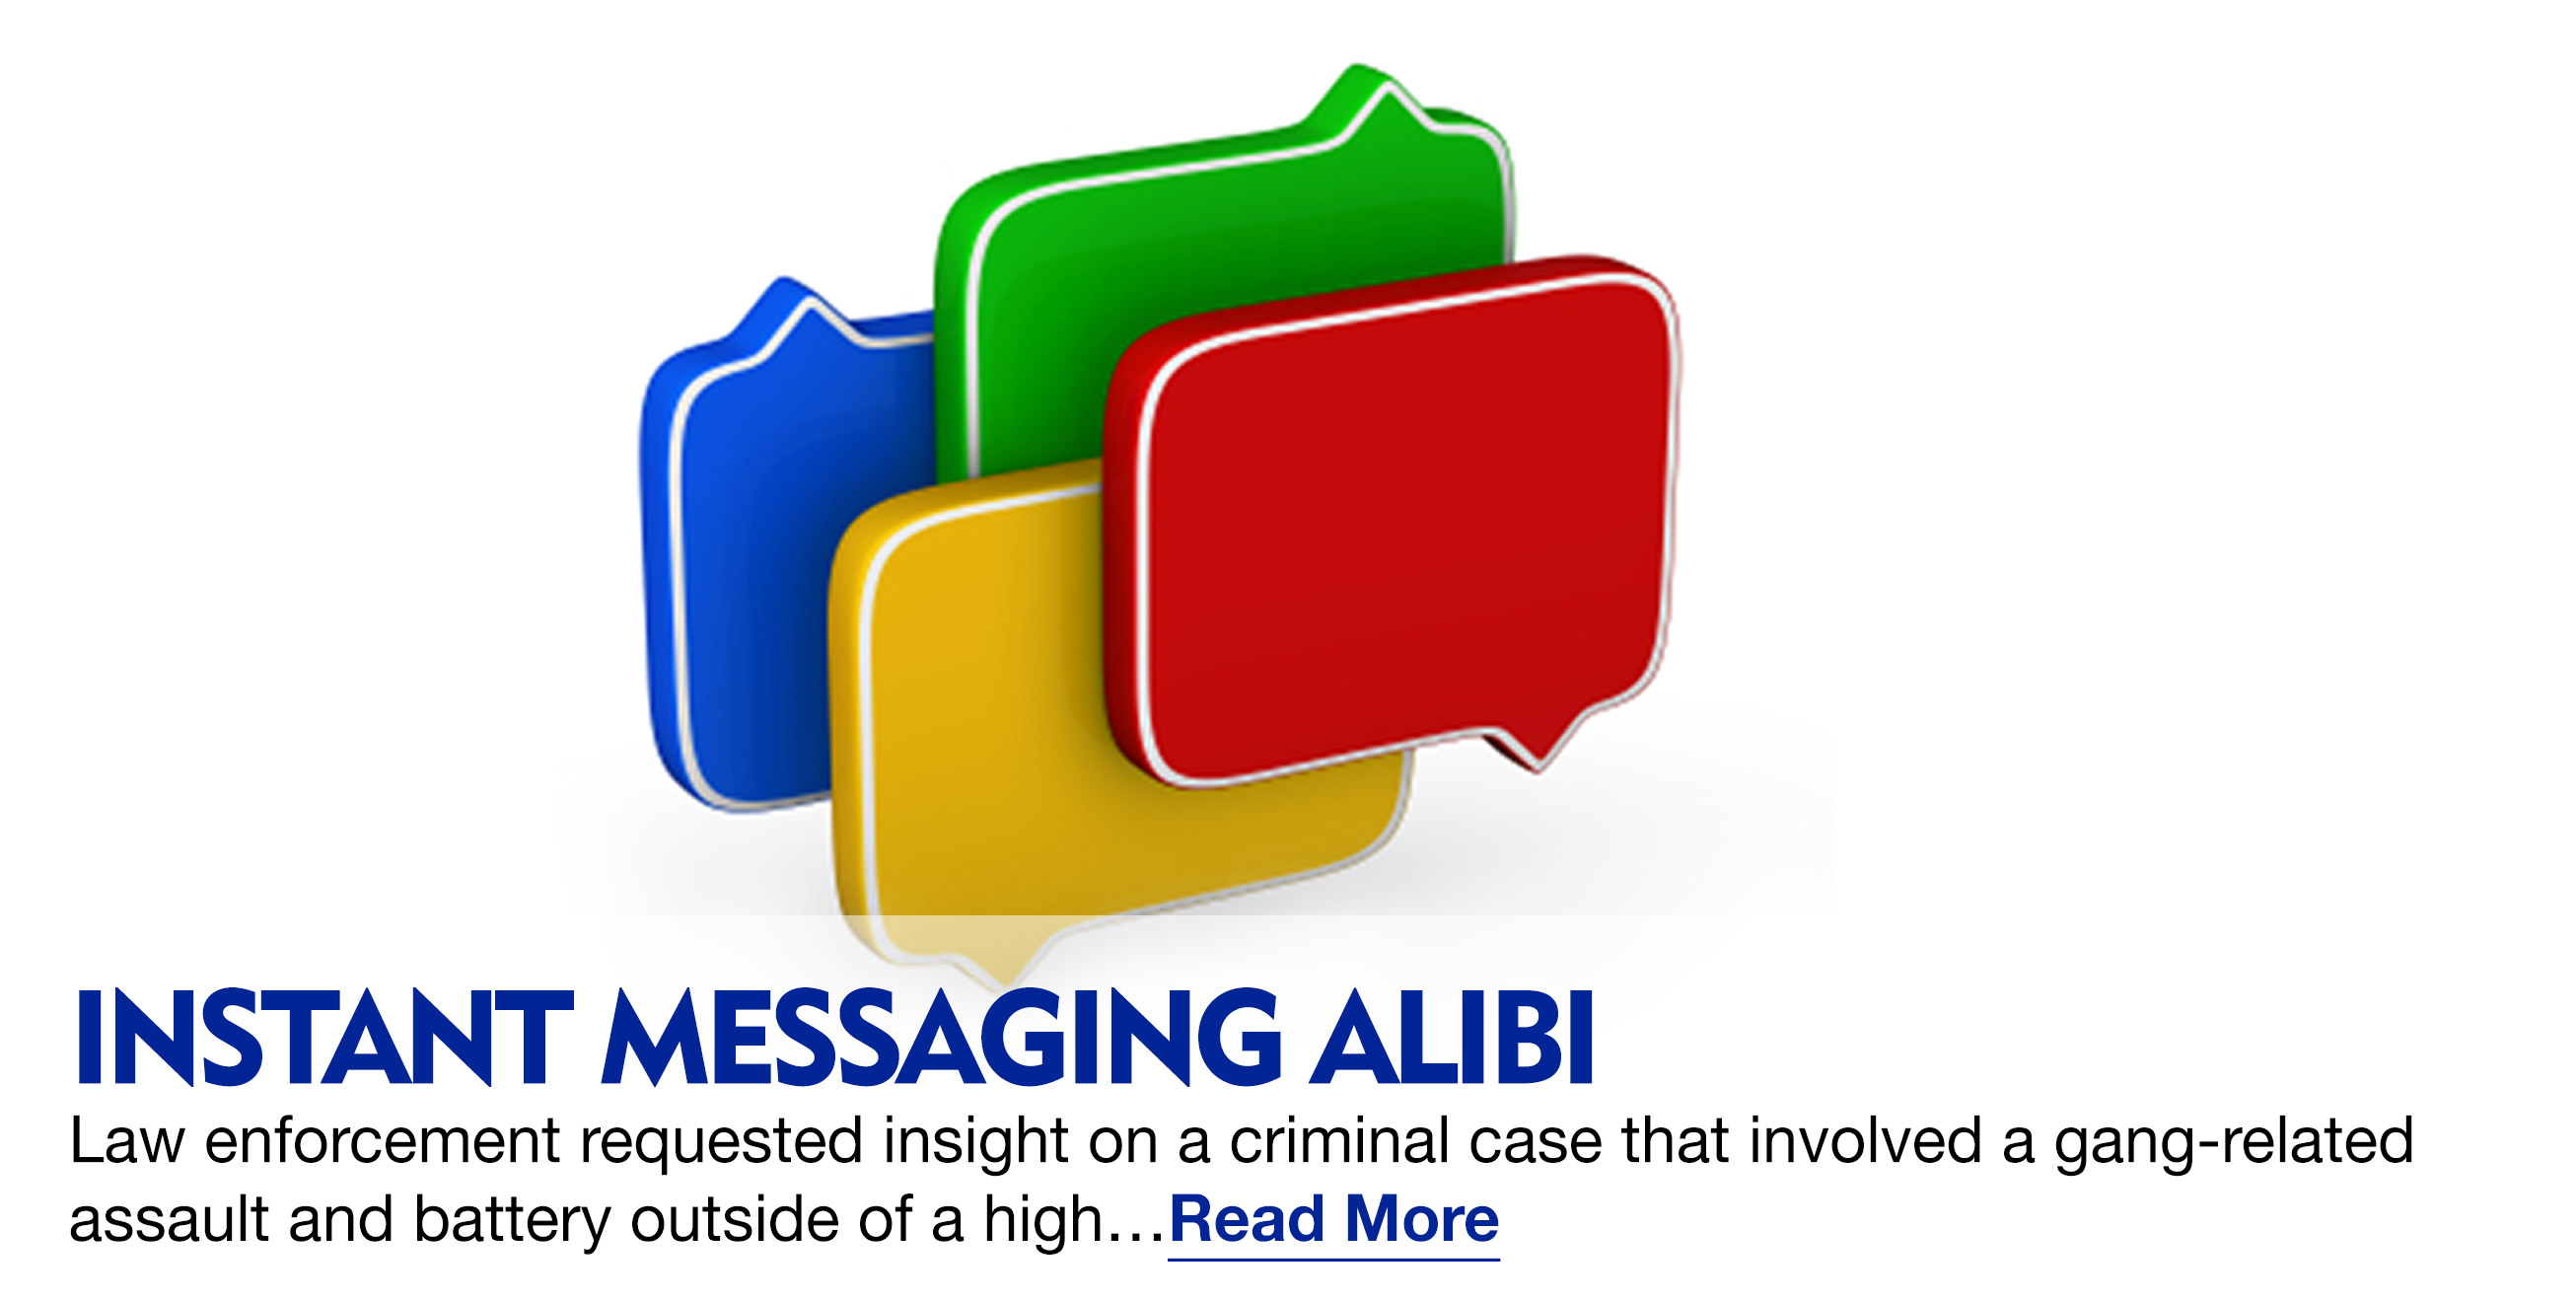 Instant Messaging Alibi